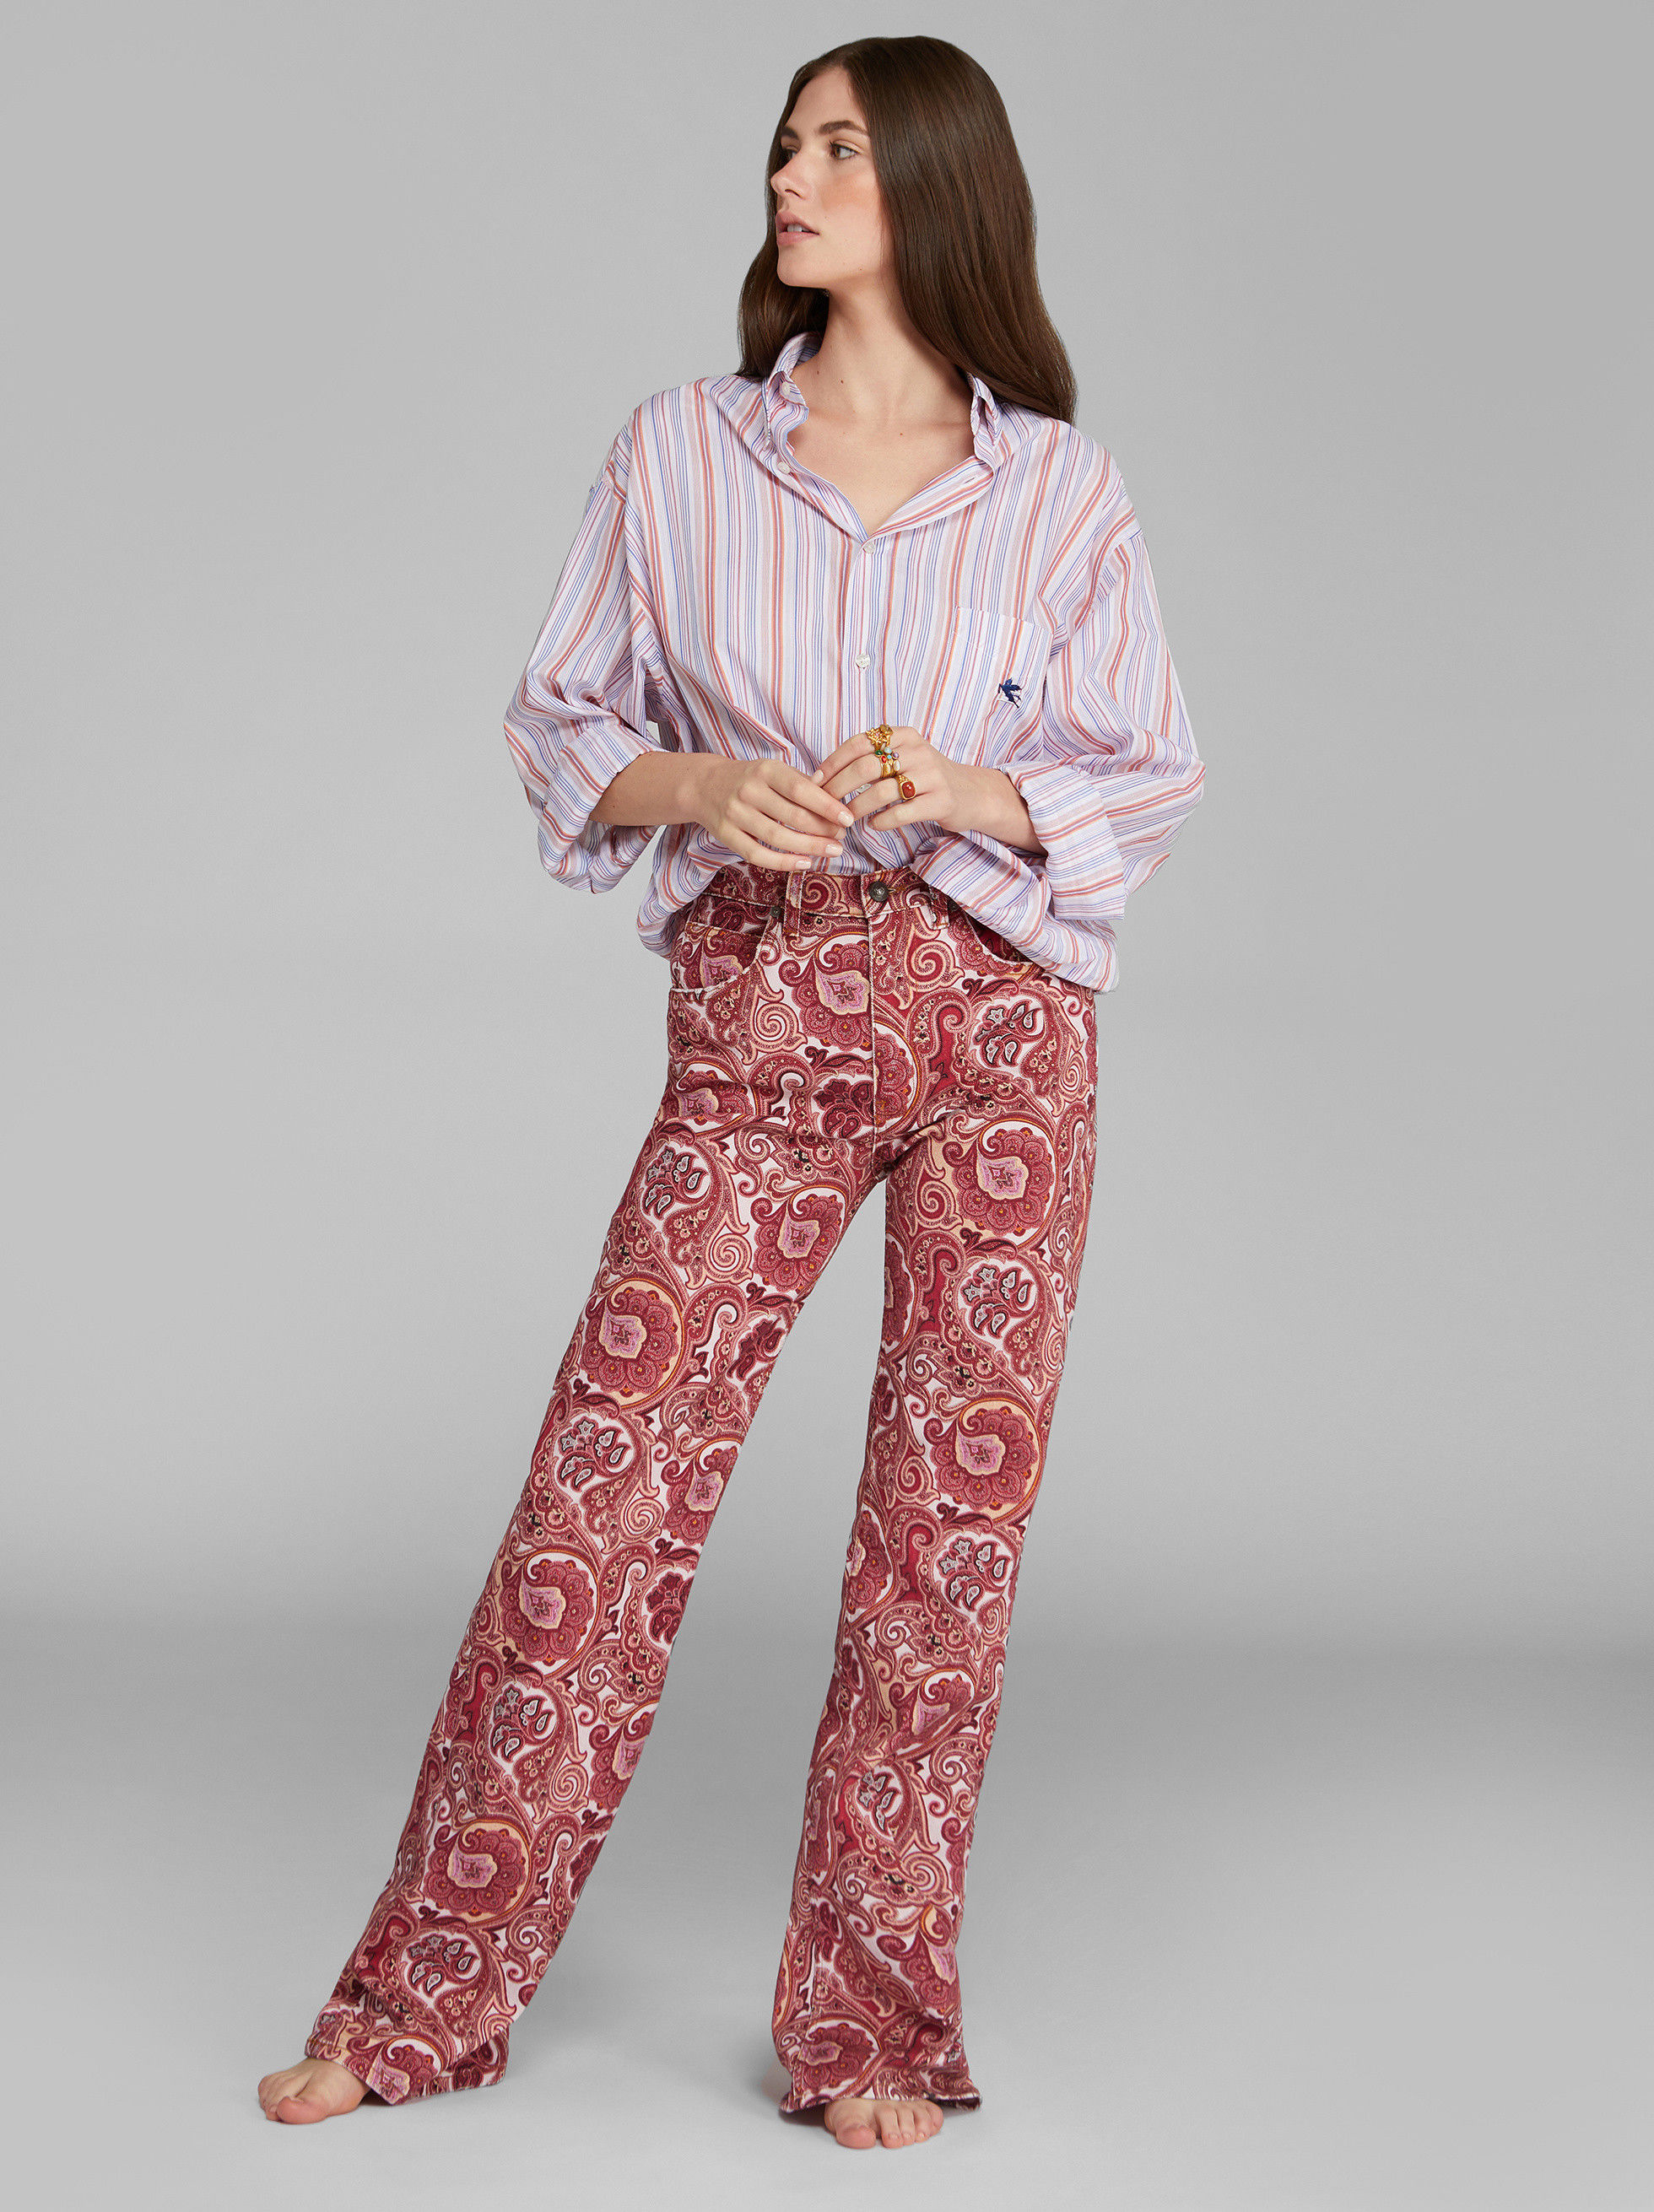 FLARED JEANS WITH PAISLEY PATTERNS